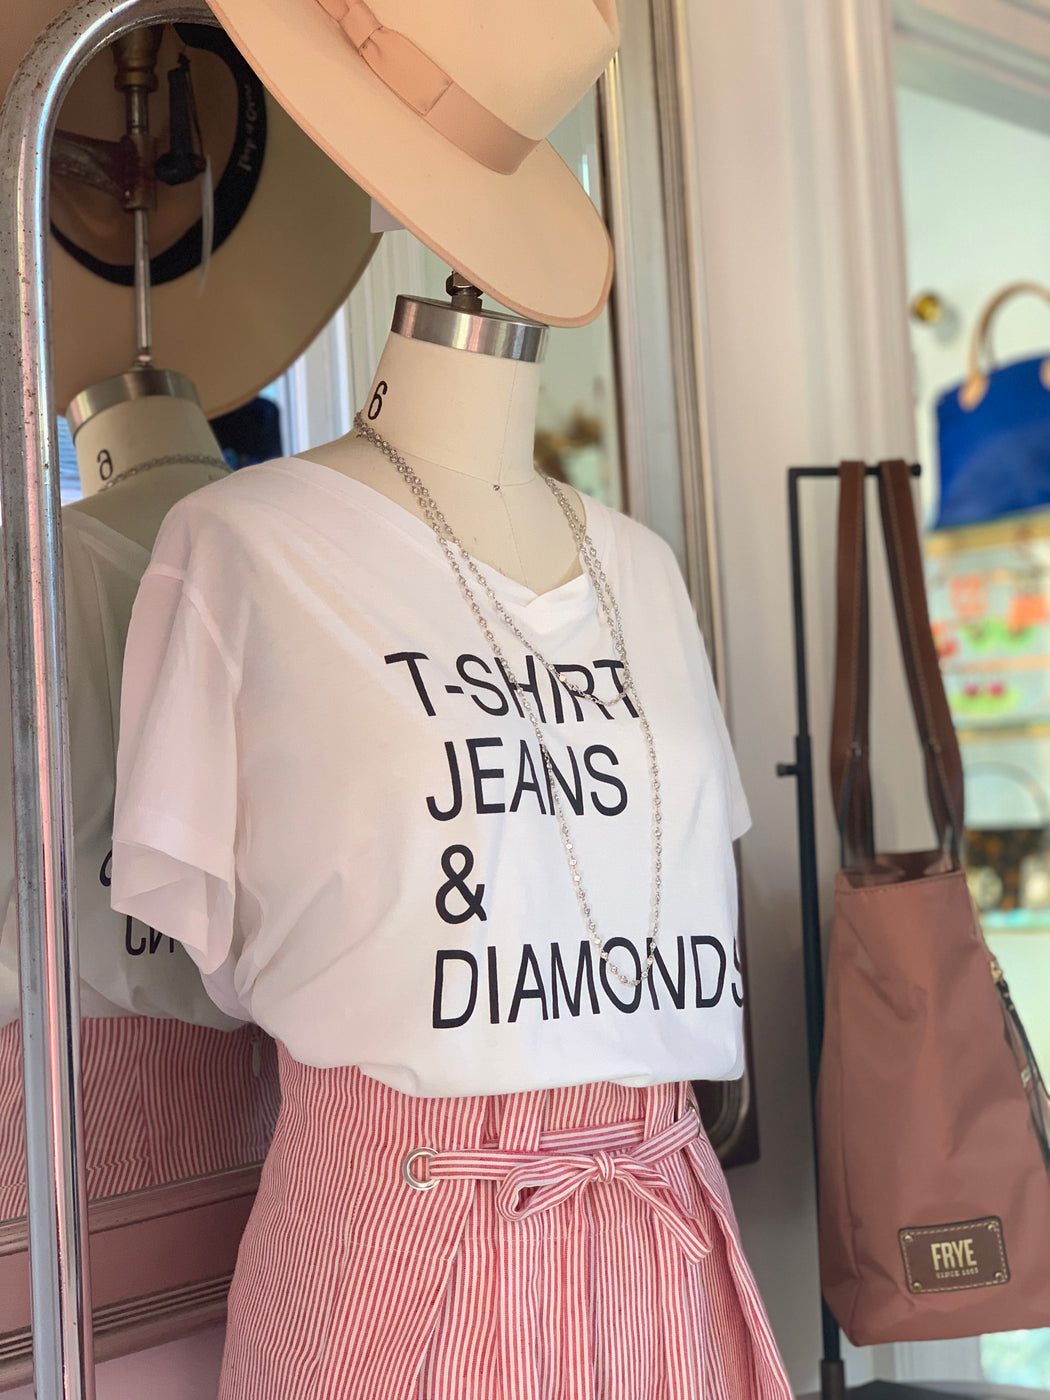 T shirt. Jeans. Diamonds. By Victorious T